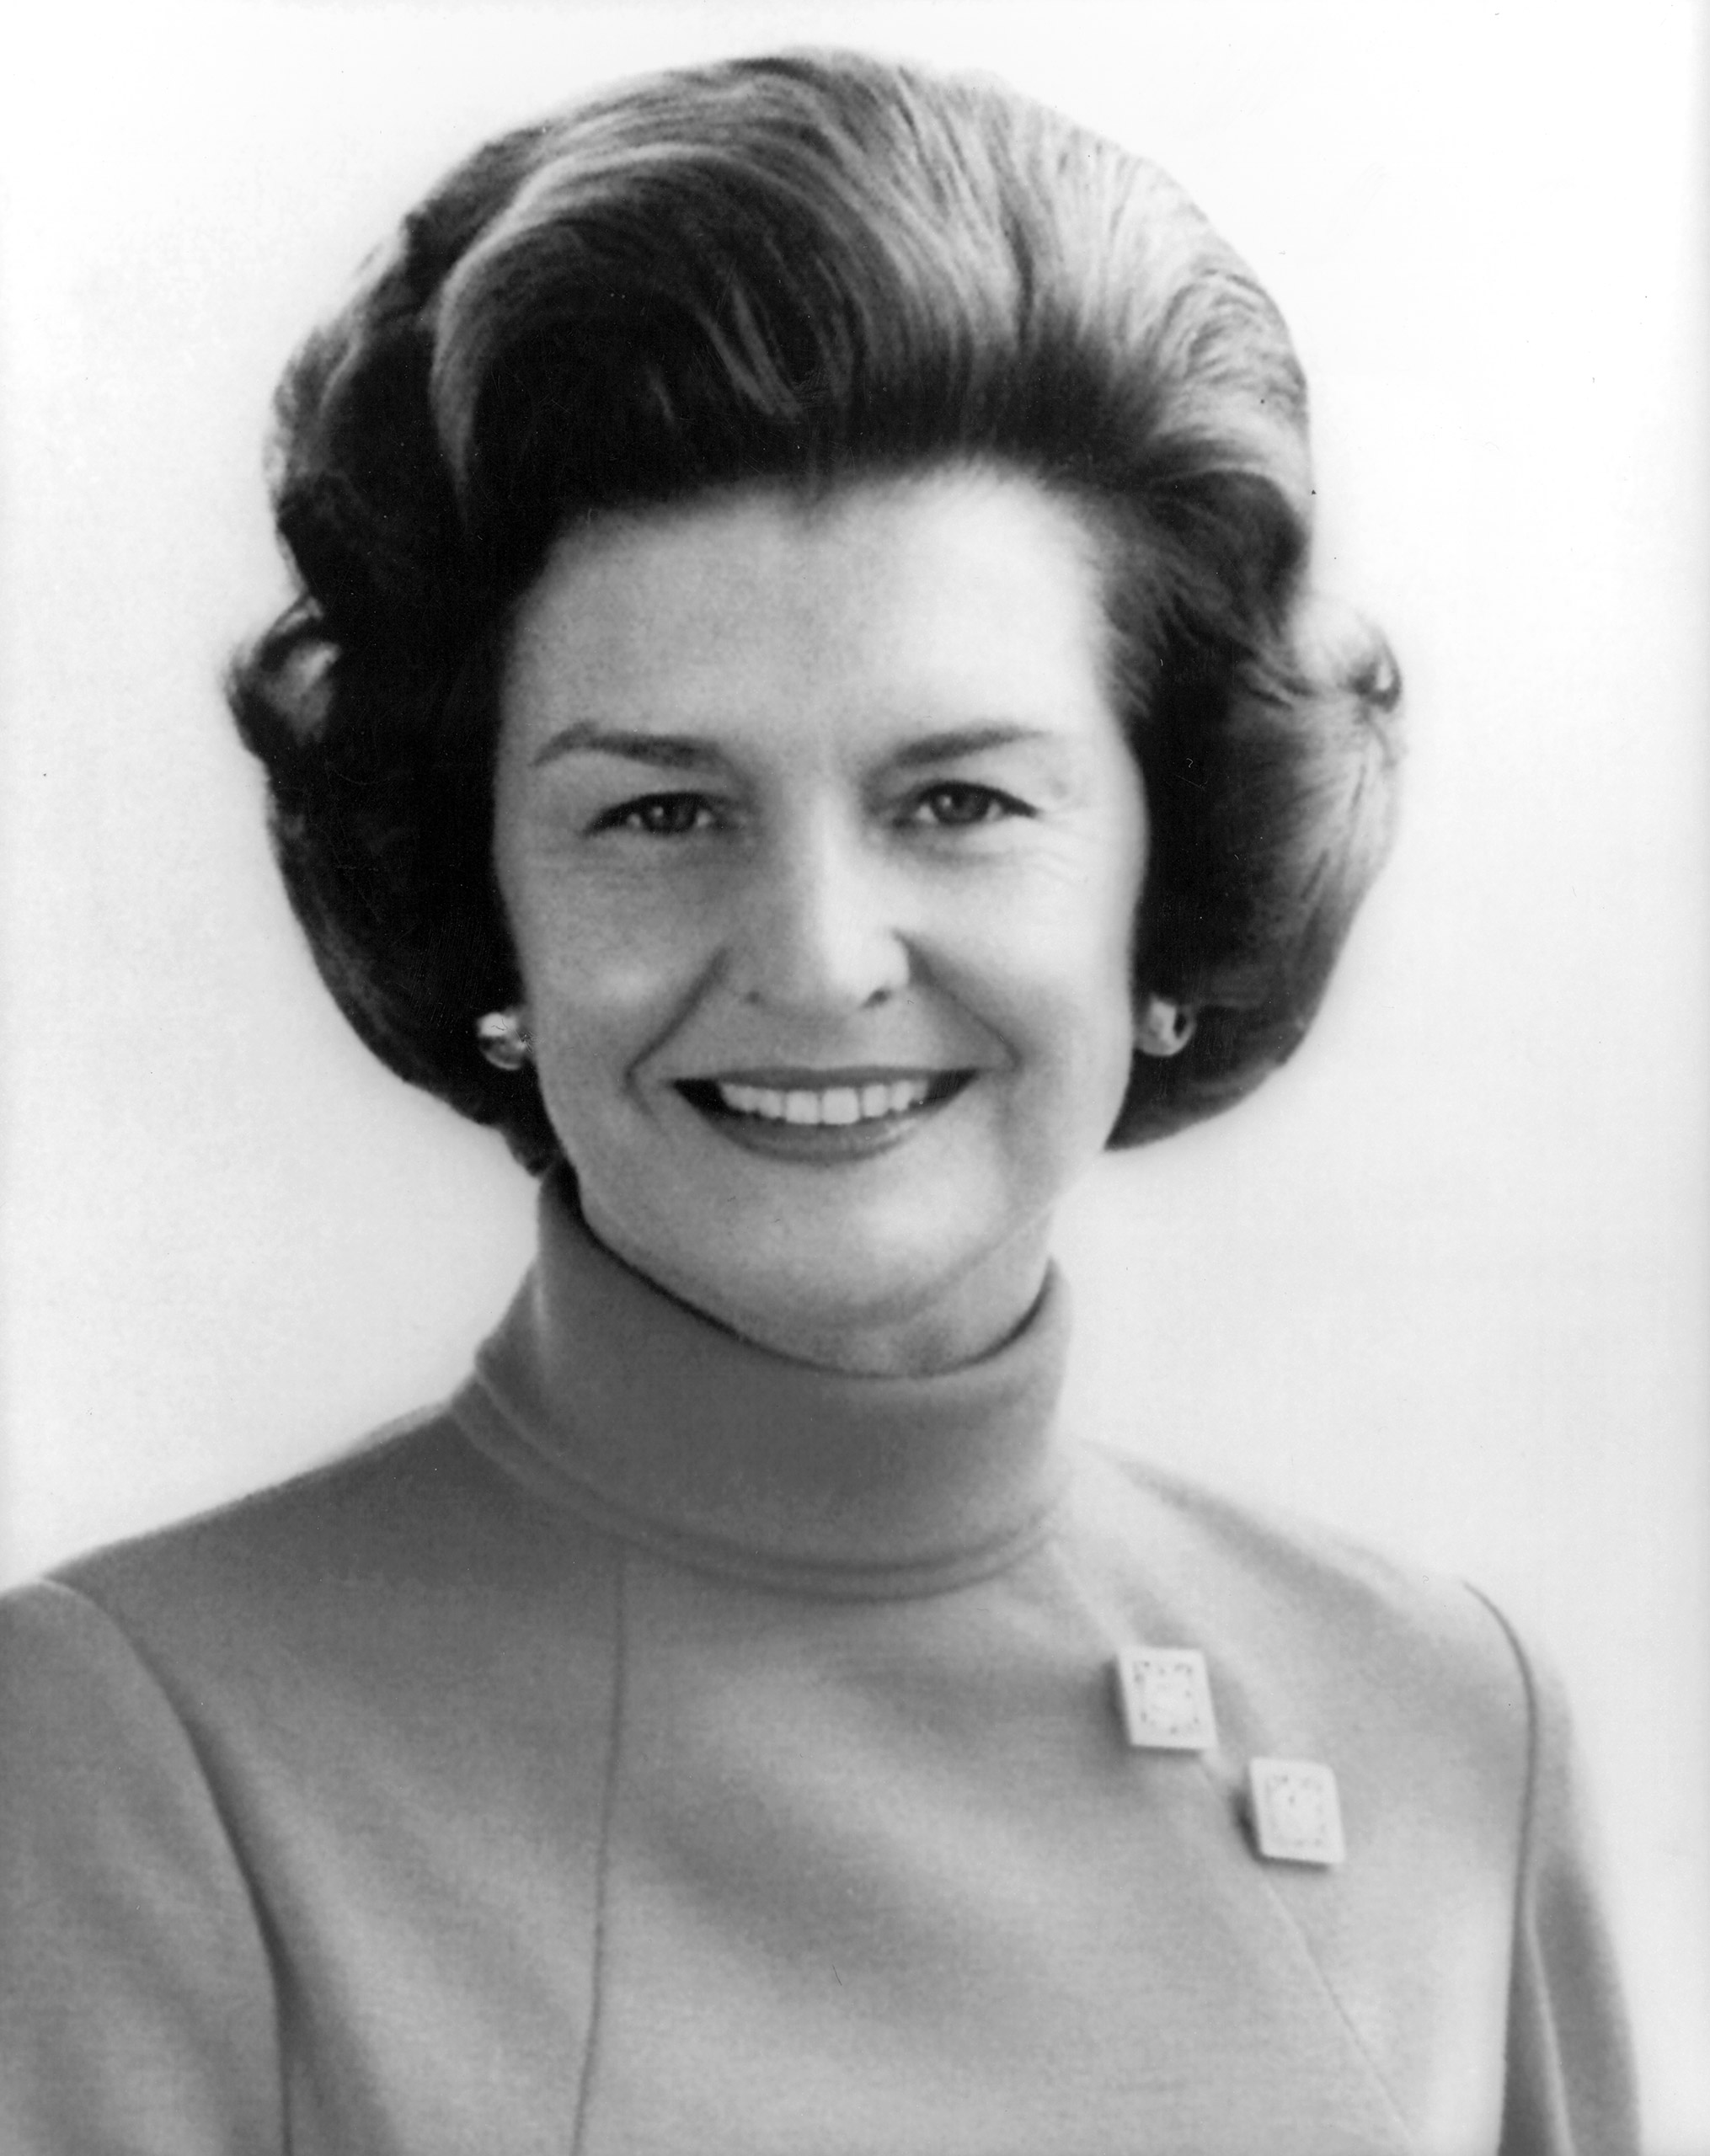 Betty Ford official White House Portrait in 1974.